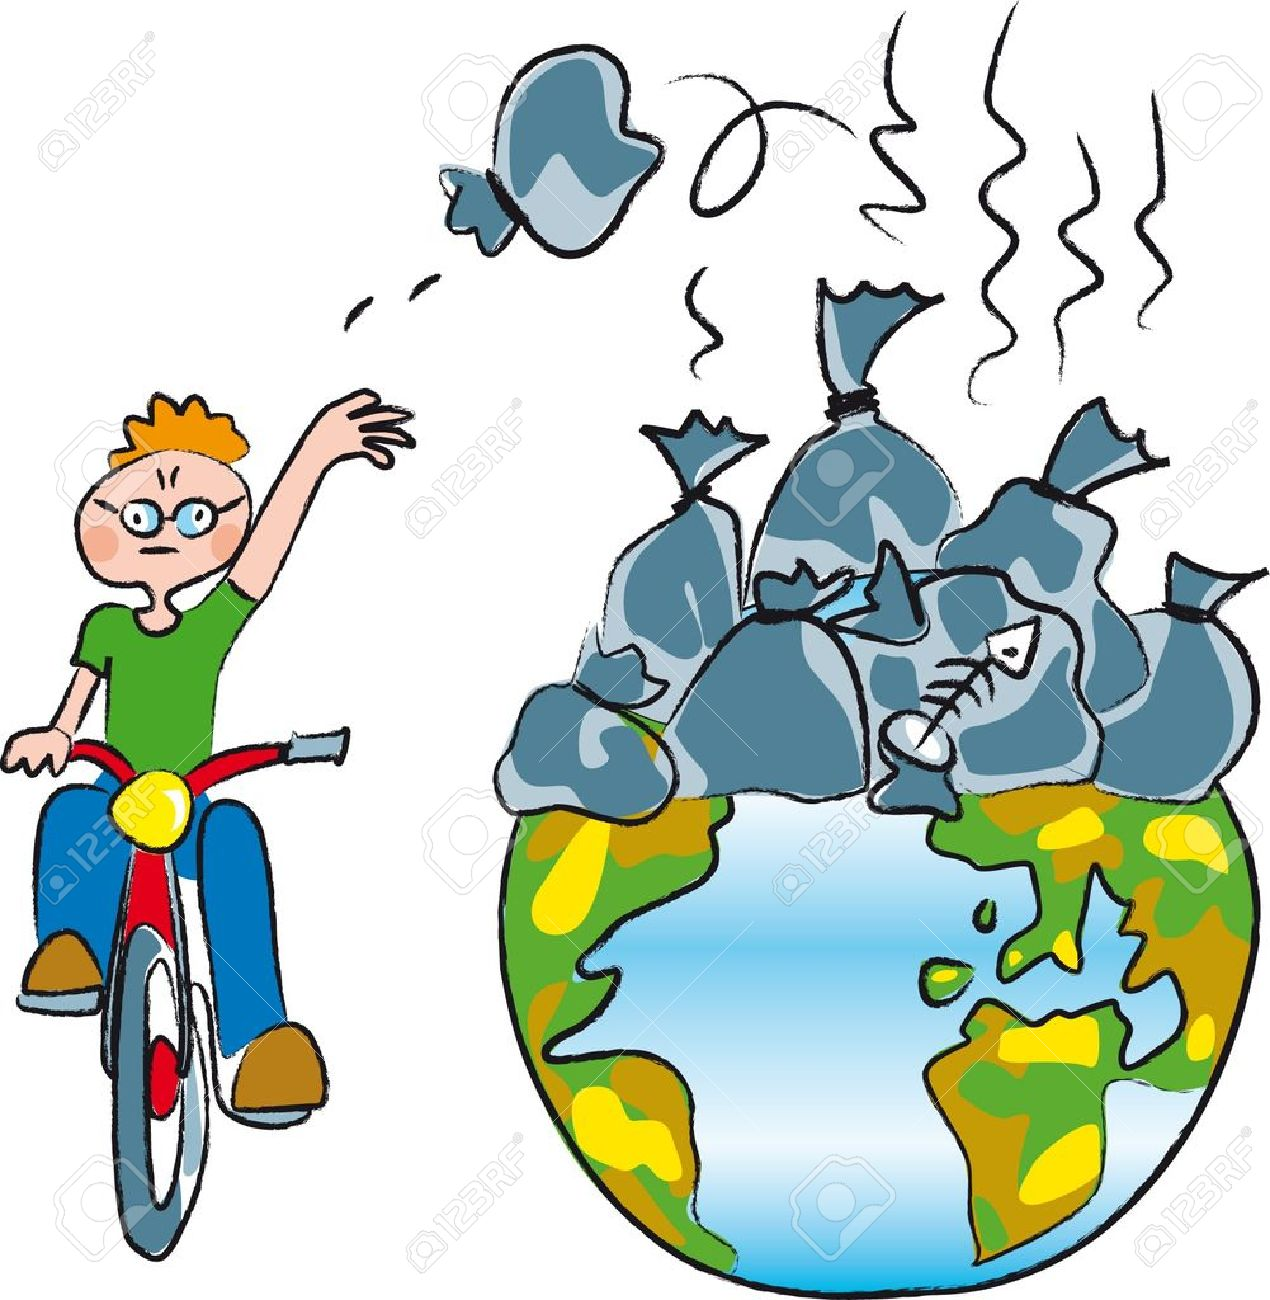 Pollution clipart. Land